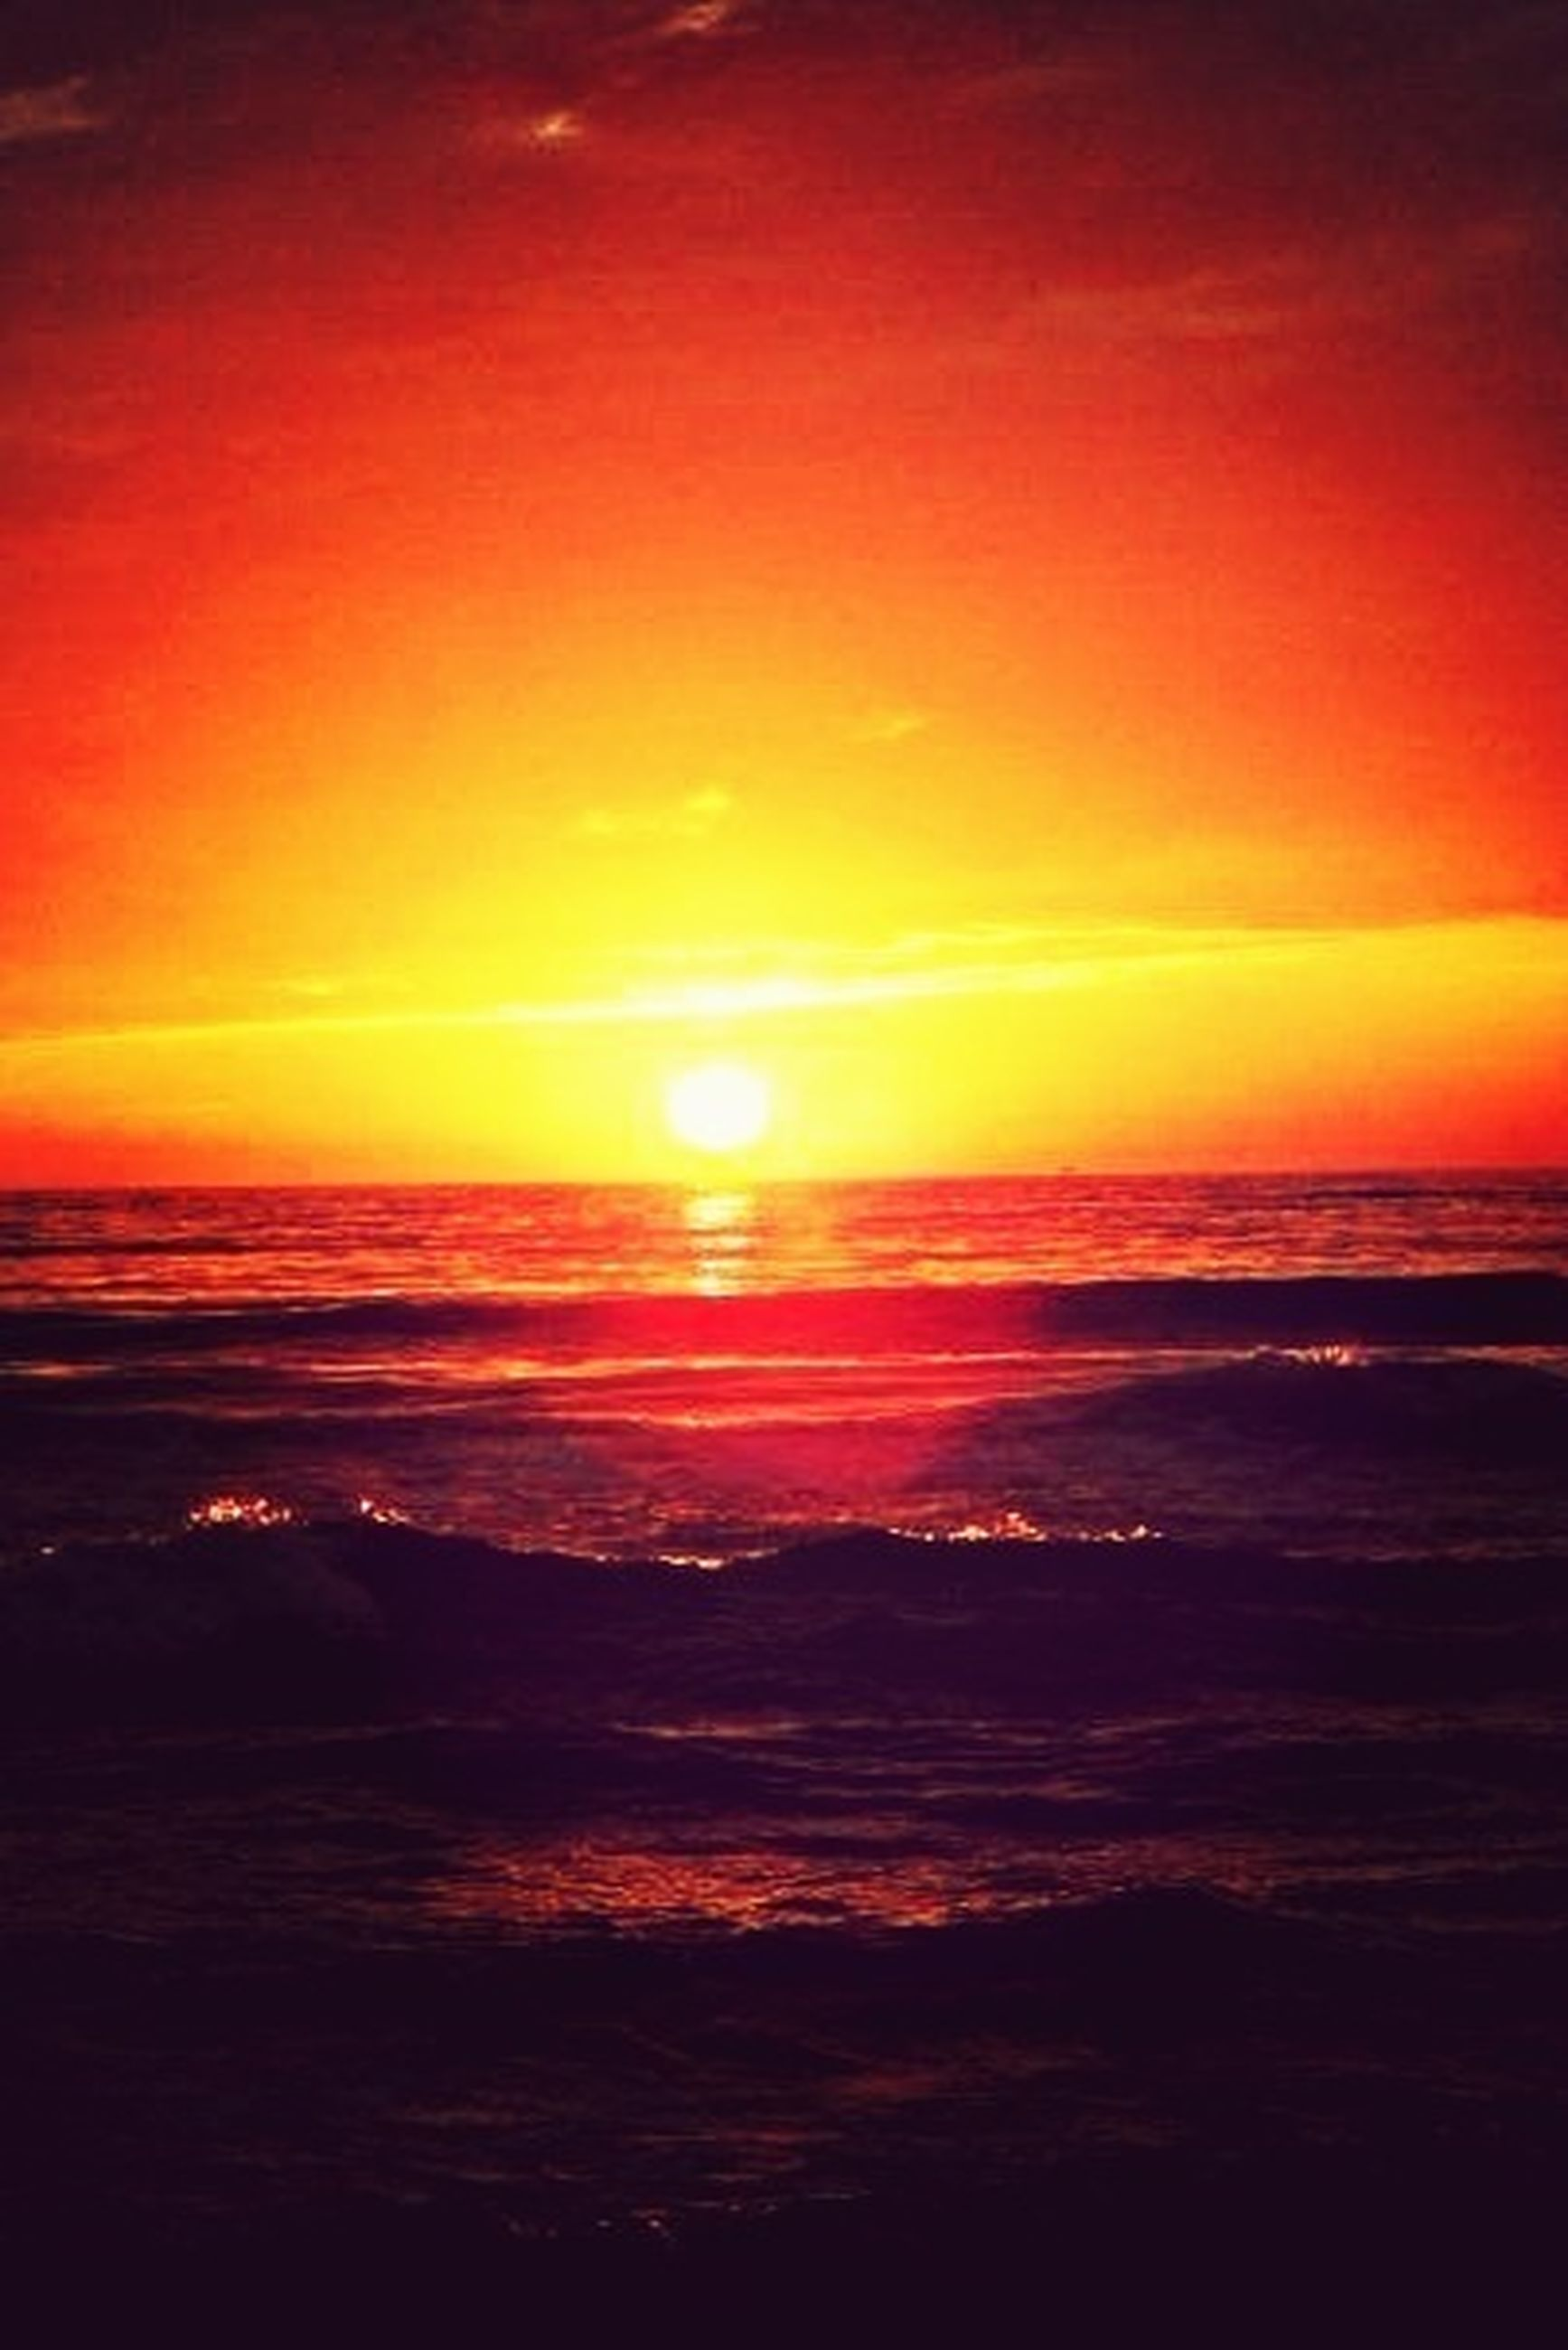 sunset, sea, horizon over water, water, scenics, beauty in nature, tranquil scene, sun, orange color, tranquility, beach, sky, idyllic, nature, wave, shore, reflection, seascape, sunlight, outdoors